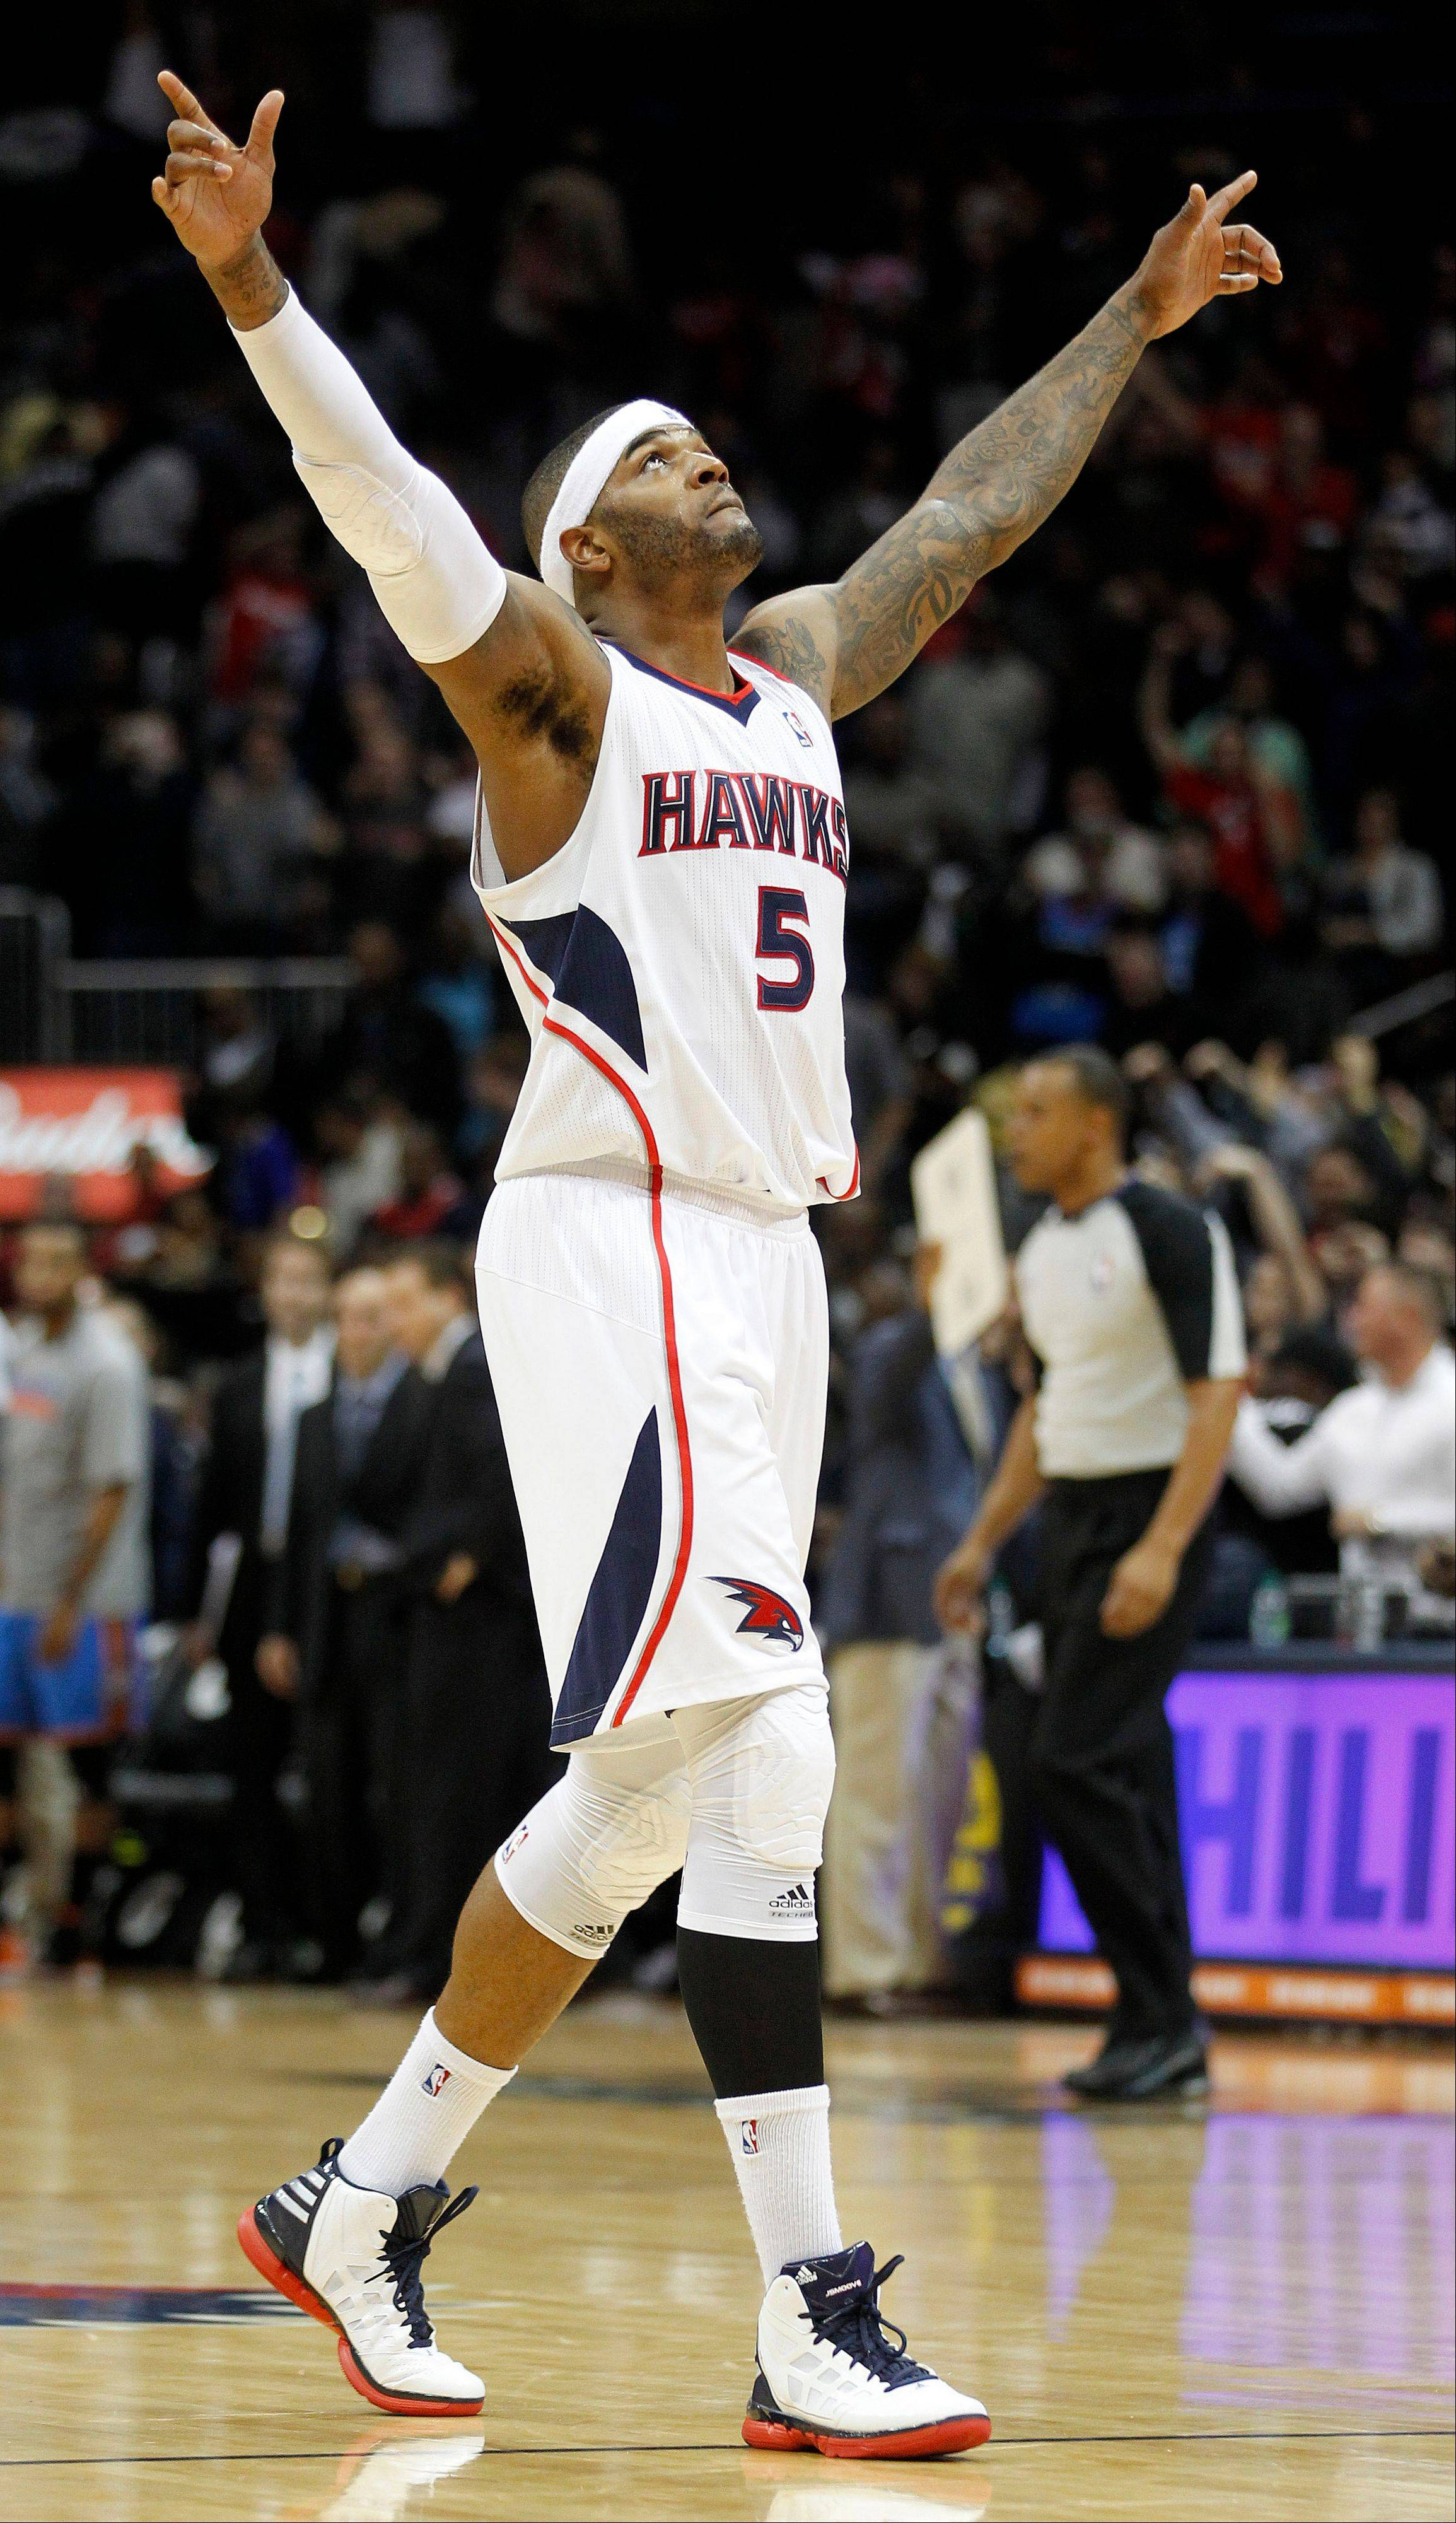 Forward Josh Smith will be playing for the Detroit Pistons next season.